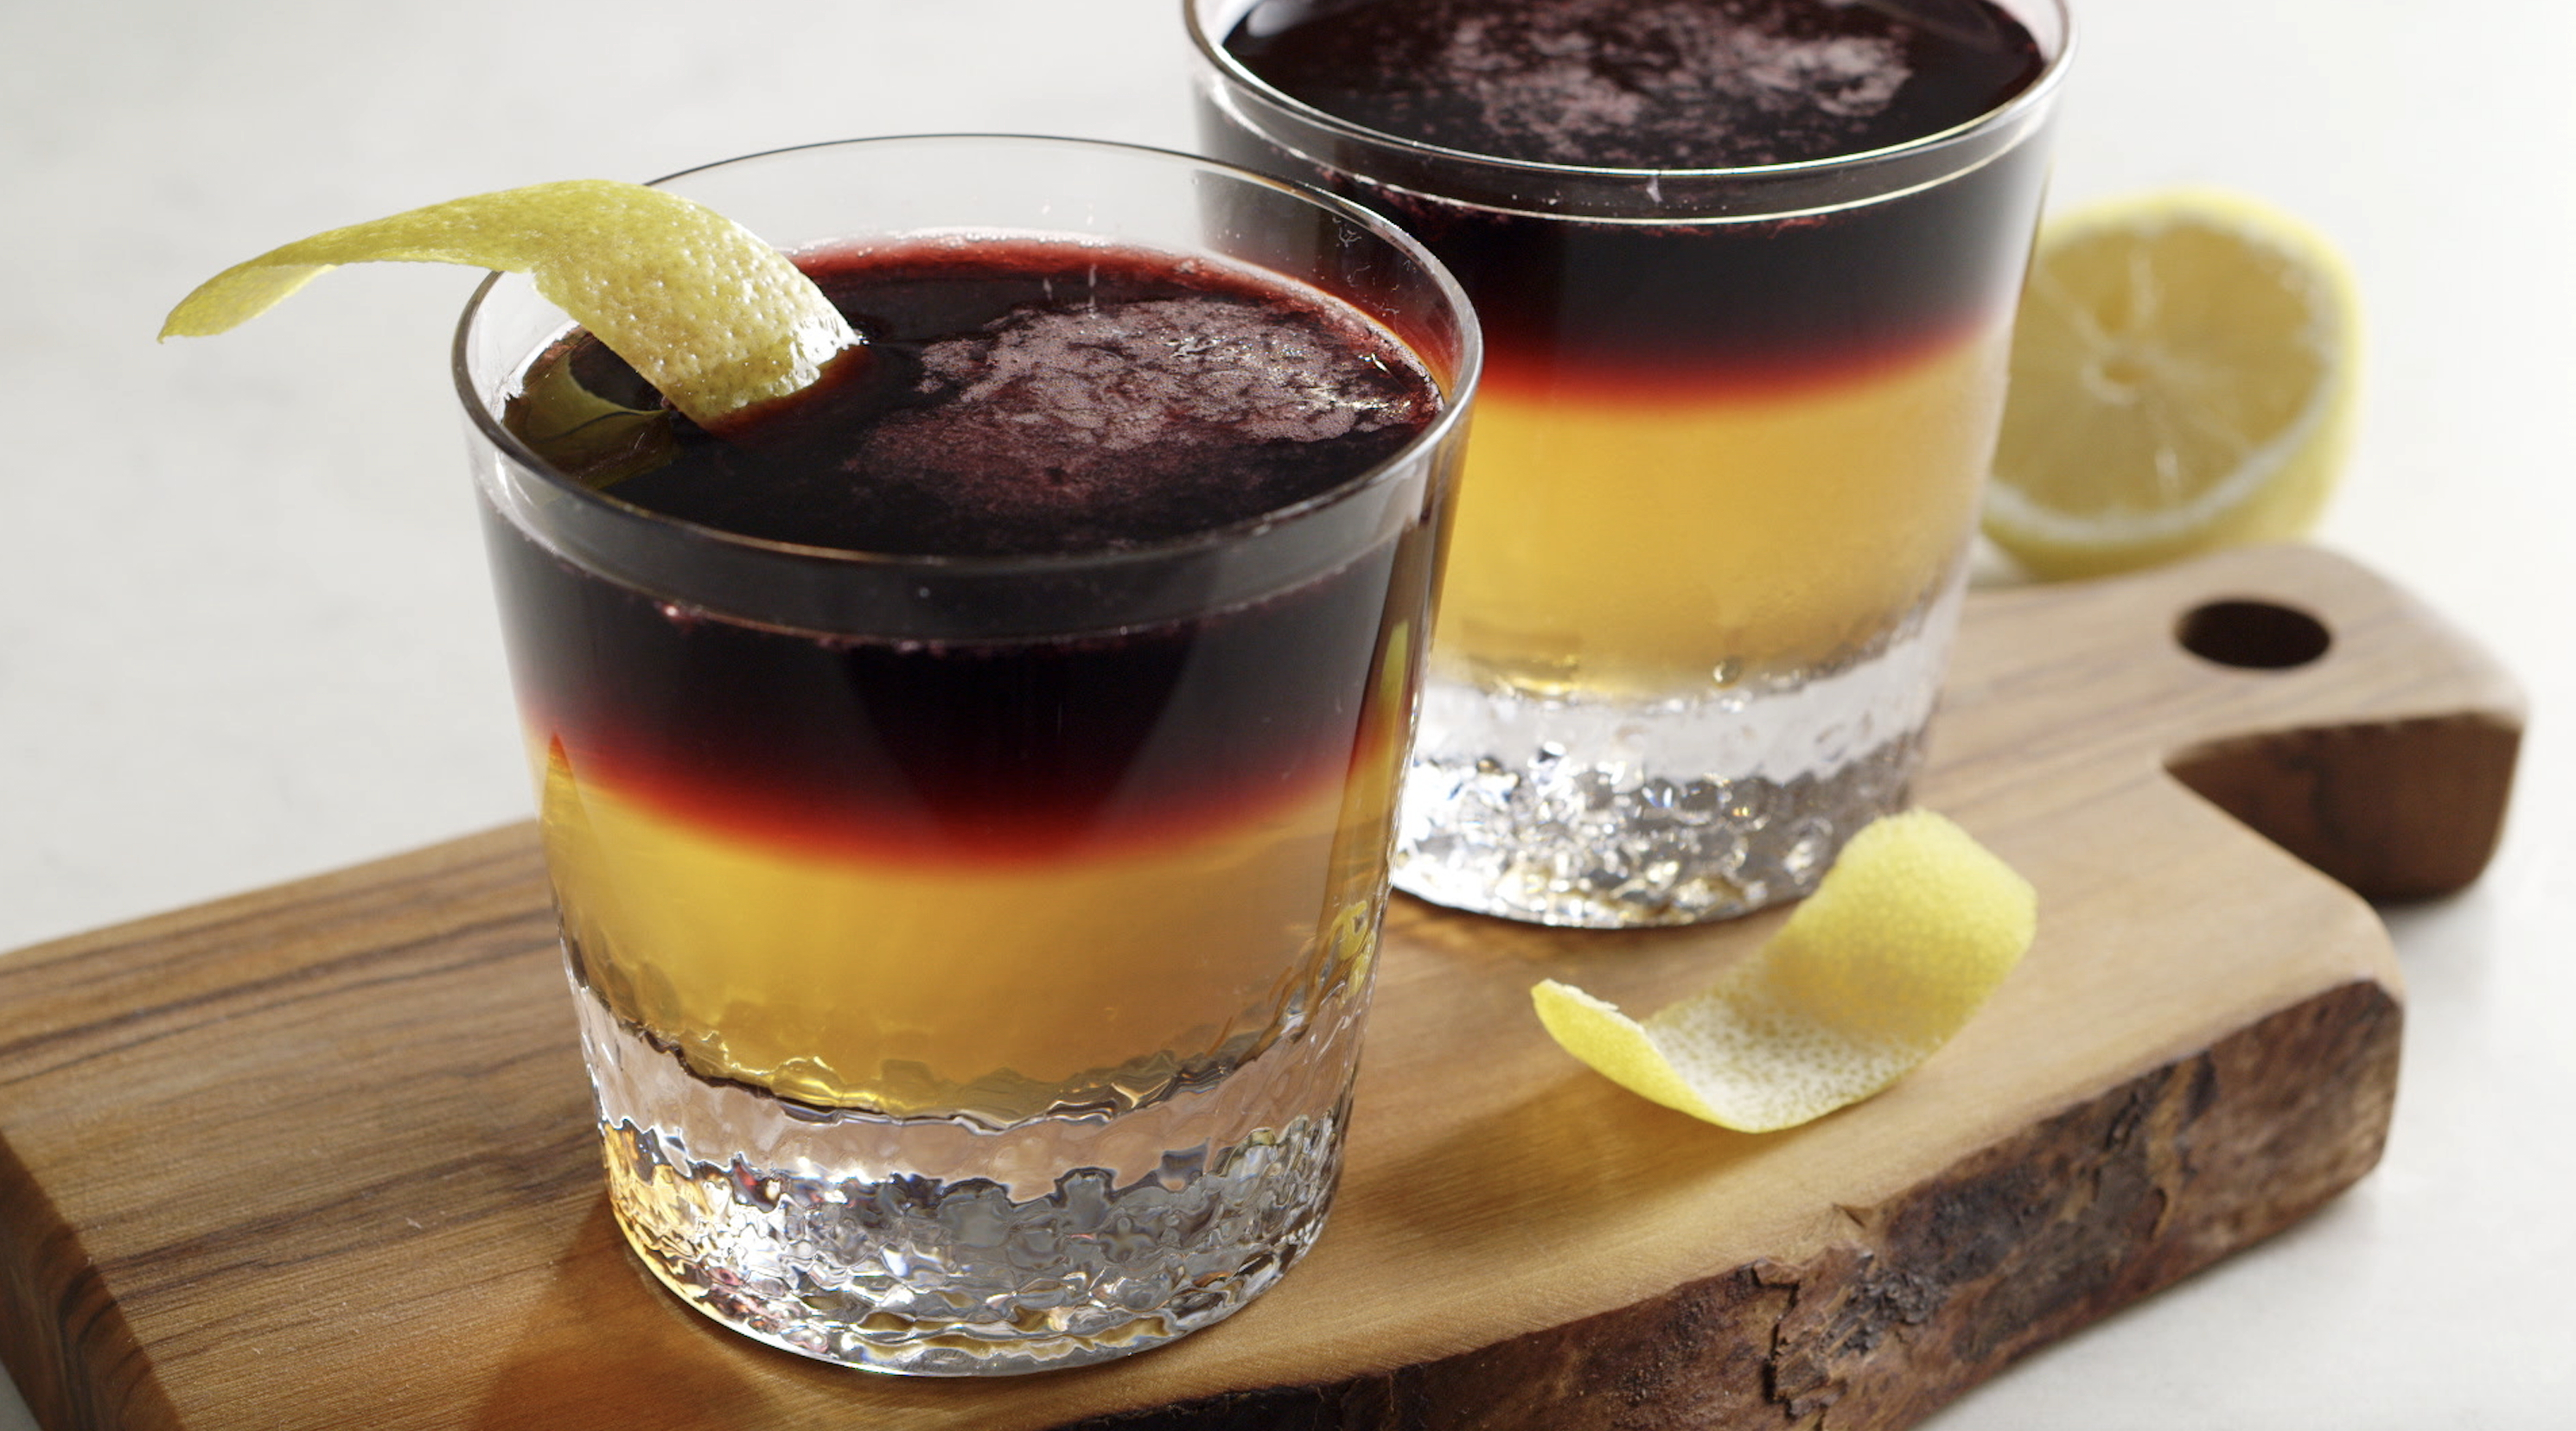 Toast to your dad with a sweet and sour cocktail this Father's Day